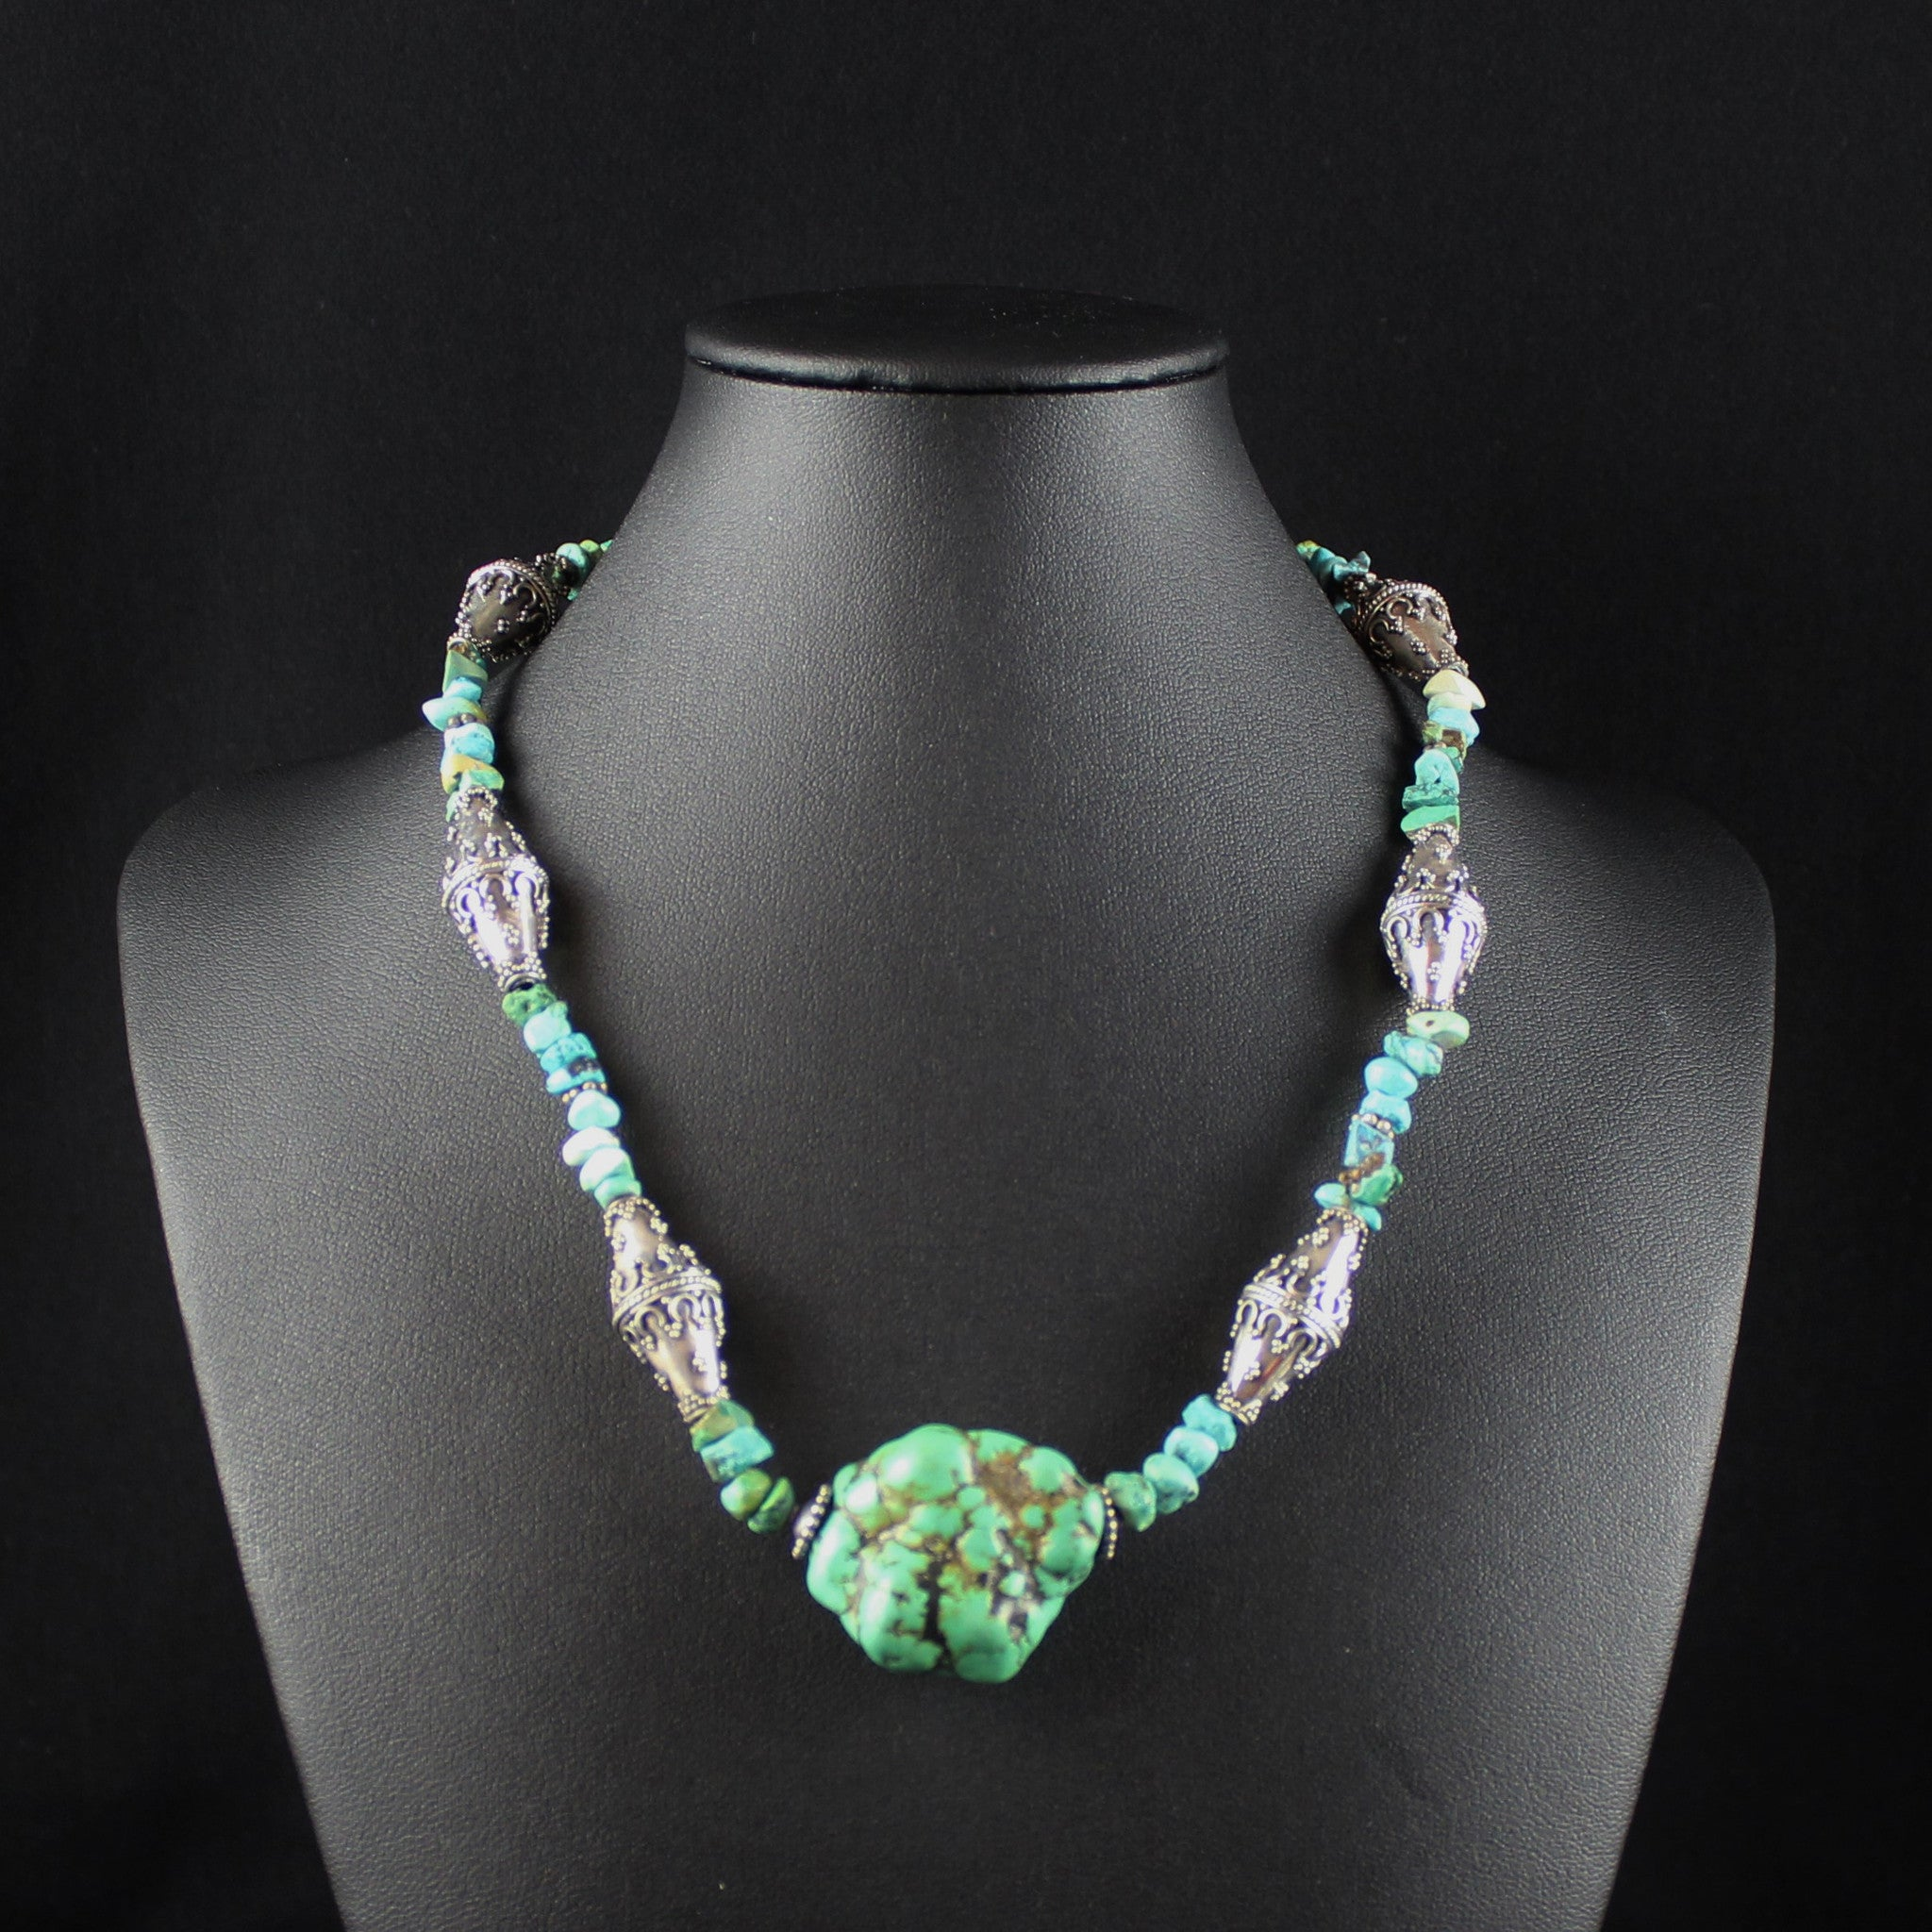 Susan M - Turquoise & Bali Silver Necklace